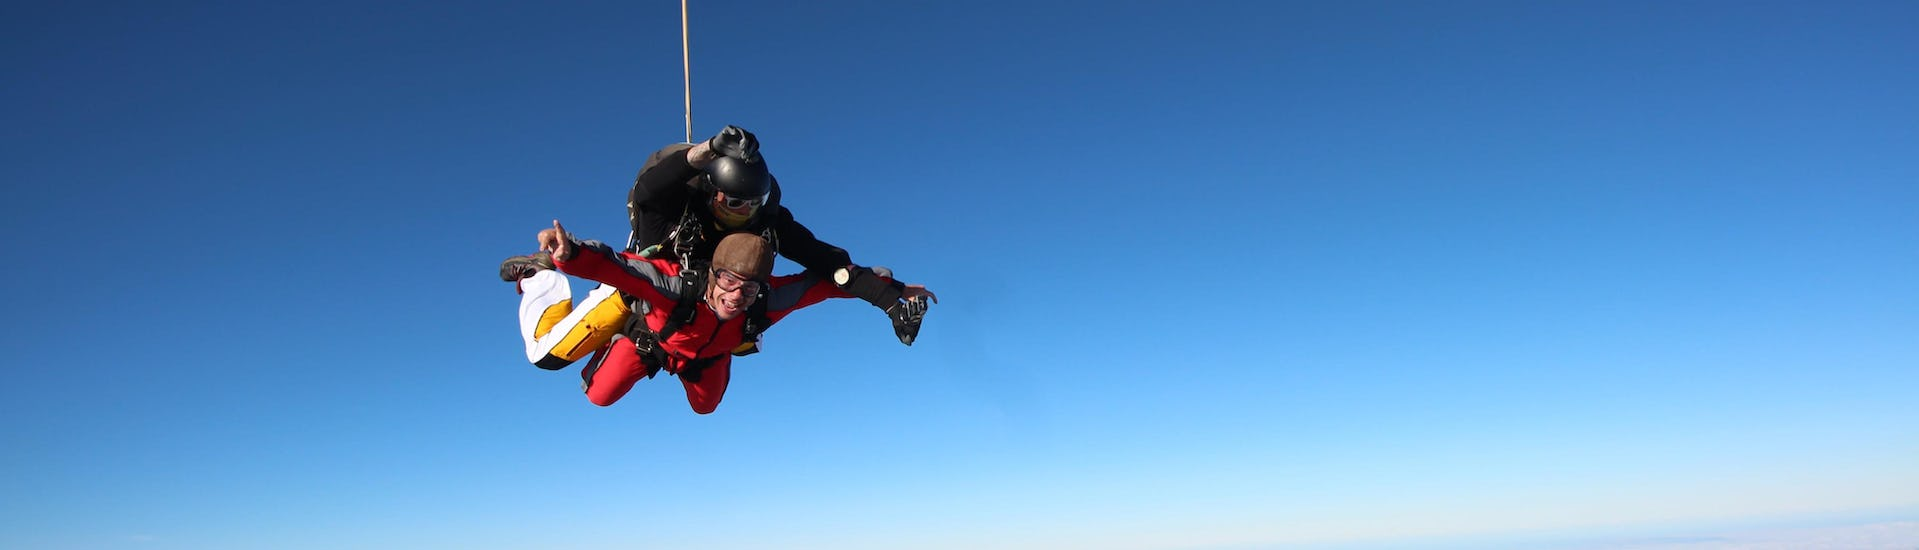 Skydiving in Bay of Islands - 9,000 ft or 12,000 ft